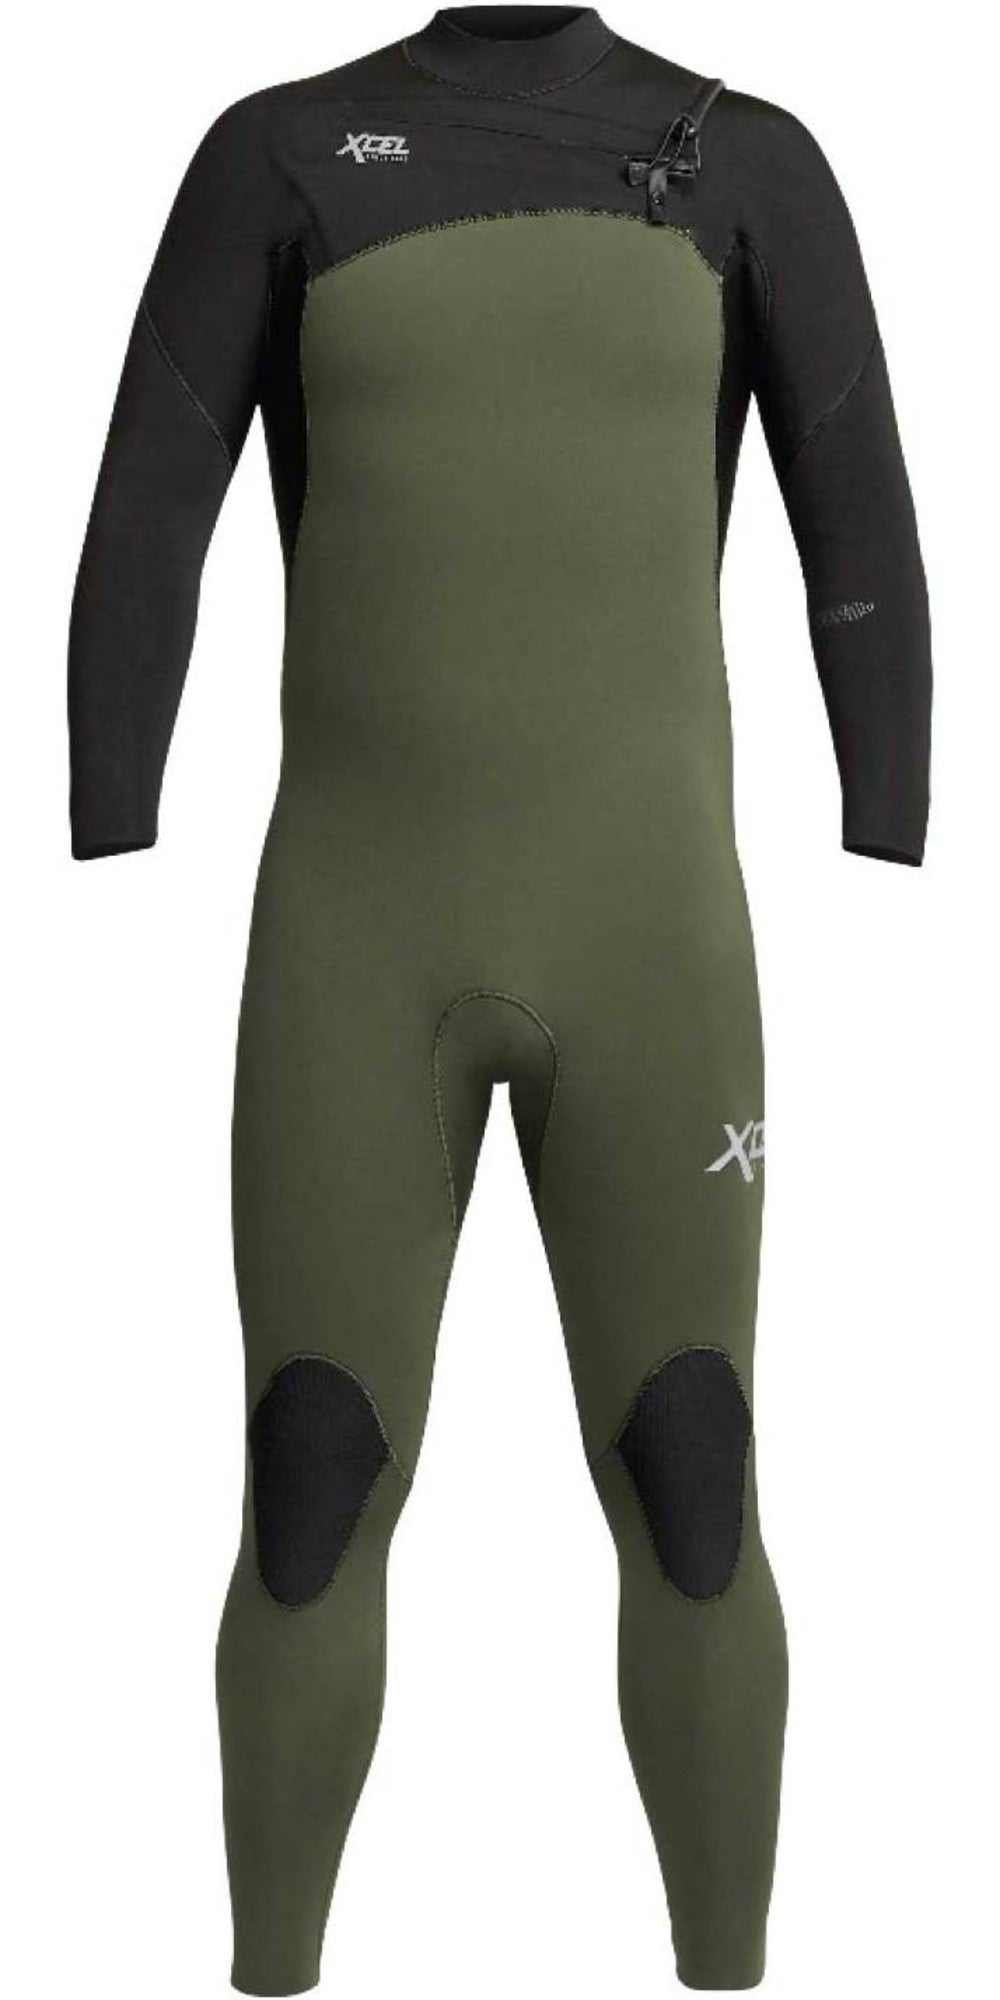 XCEL 4/3 INFINITI FOREST GREEN WETSUIT 2021